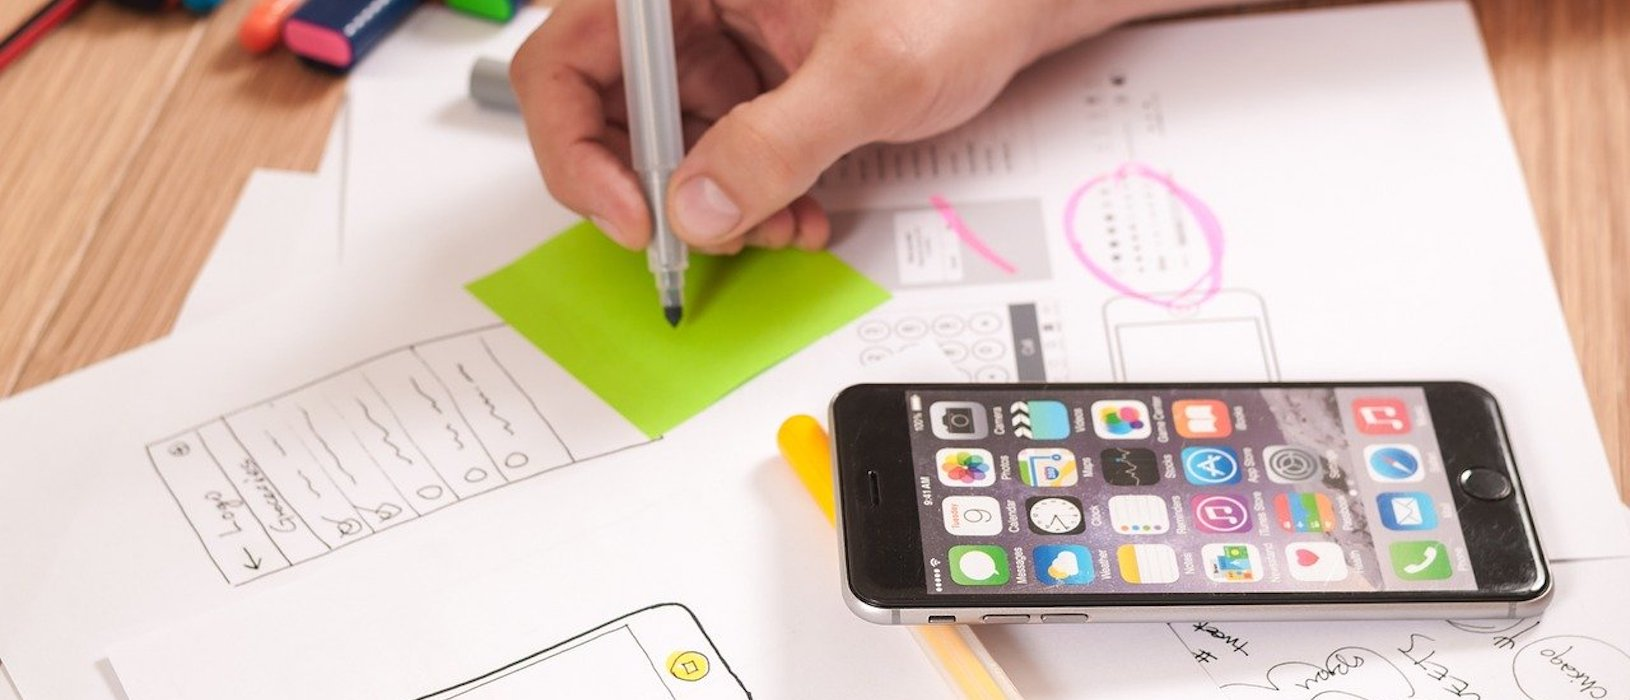 designing building mobile applications